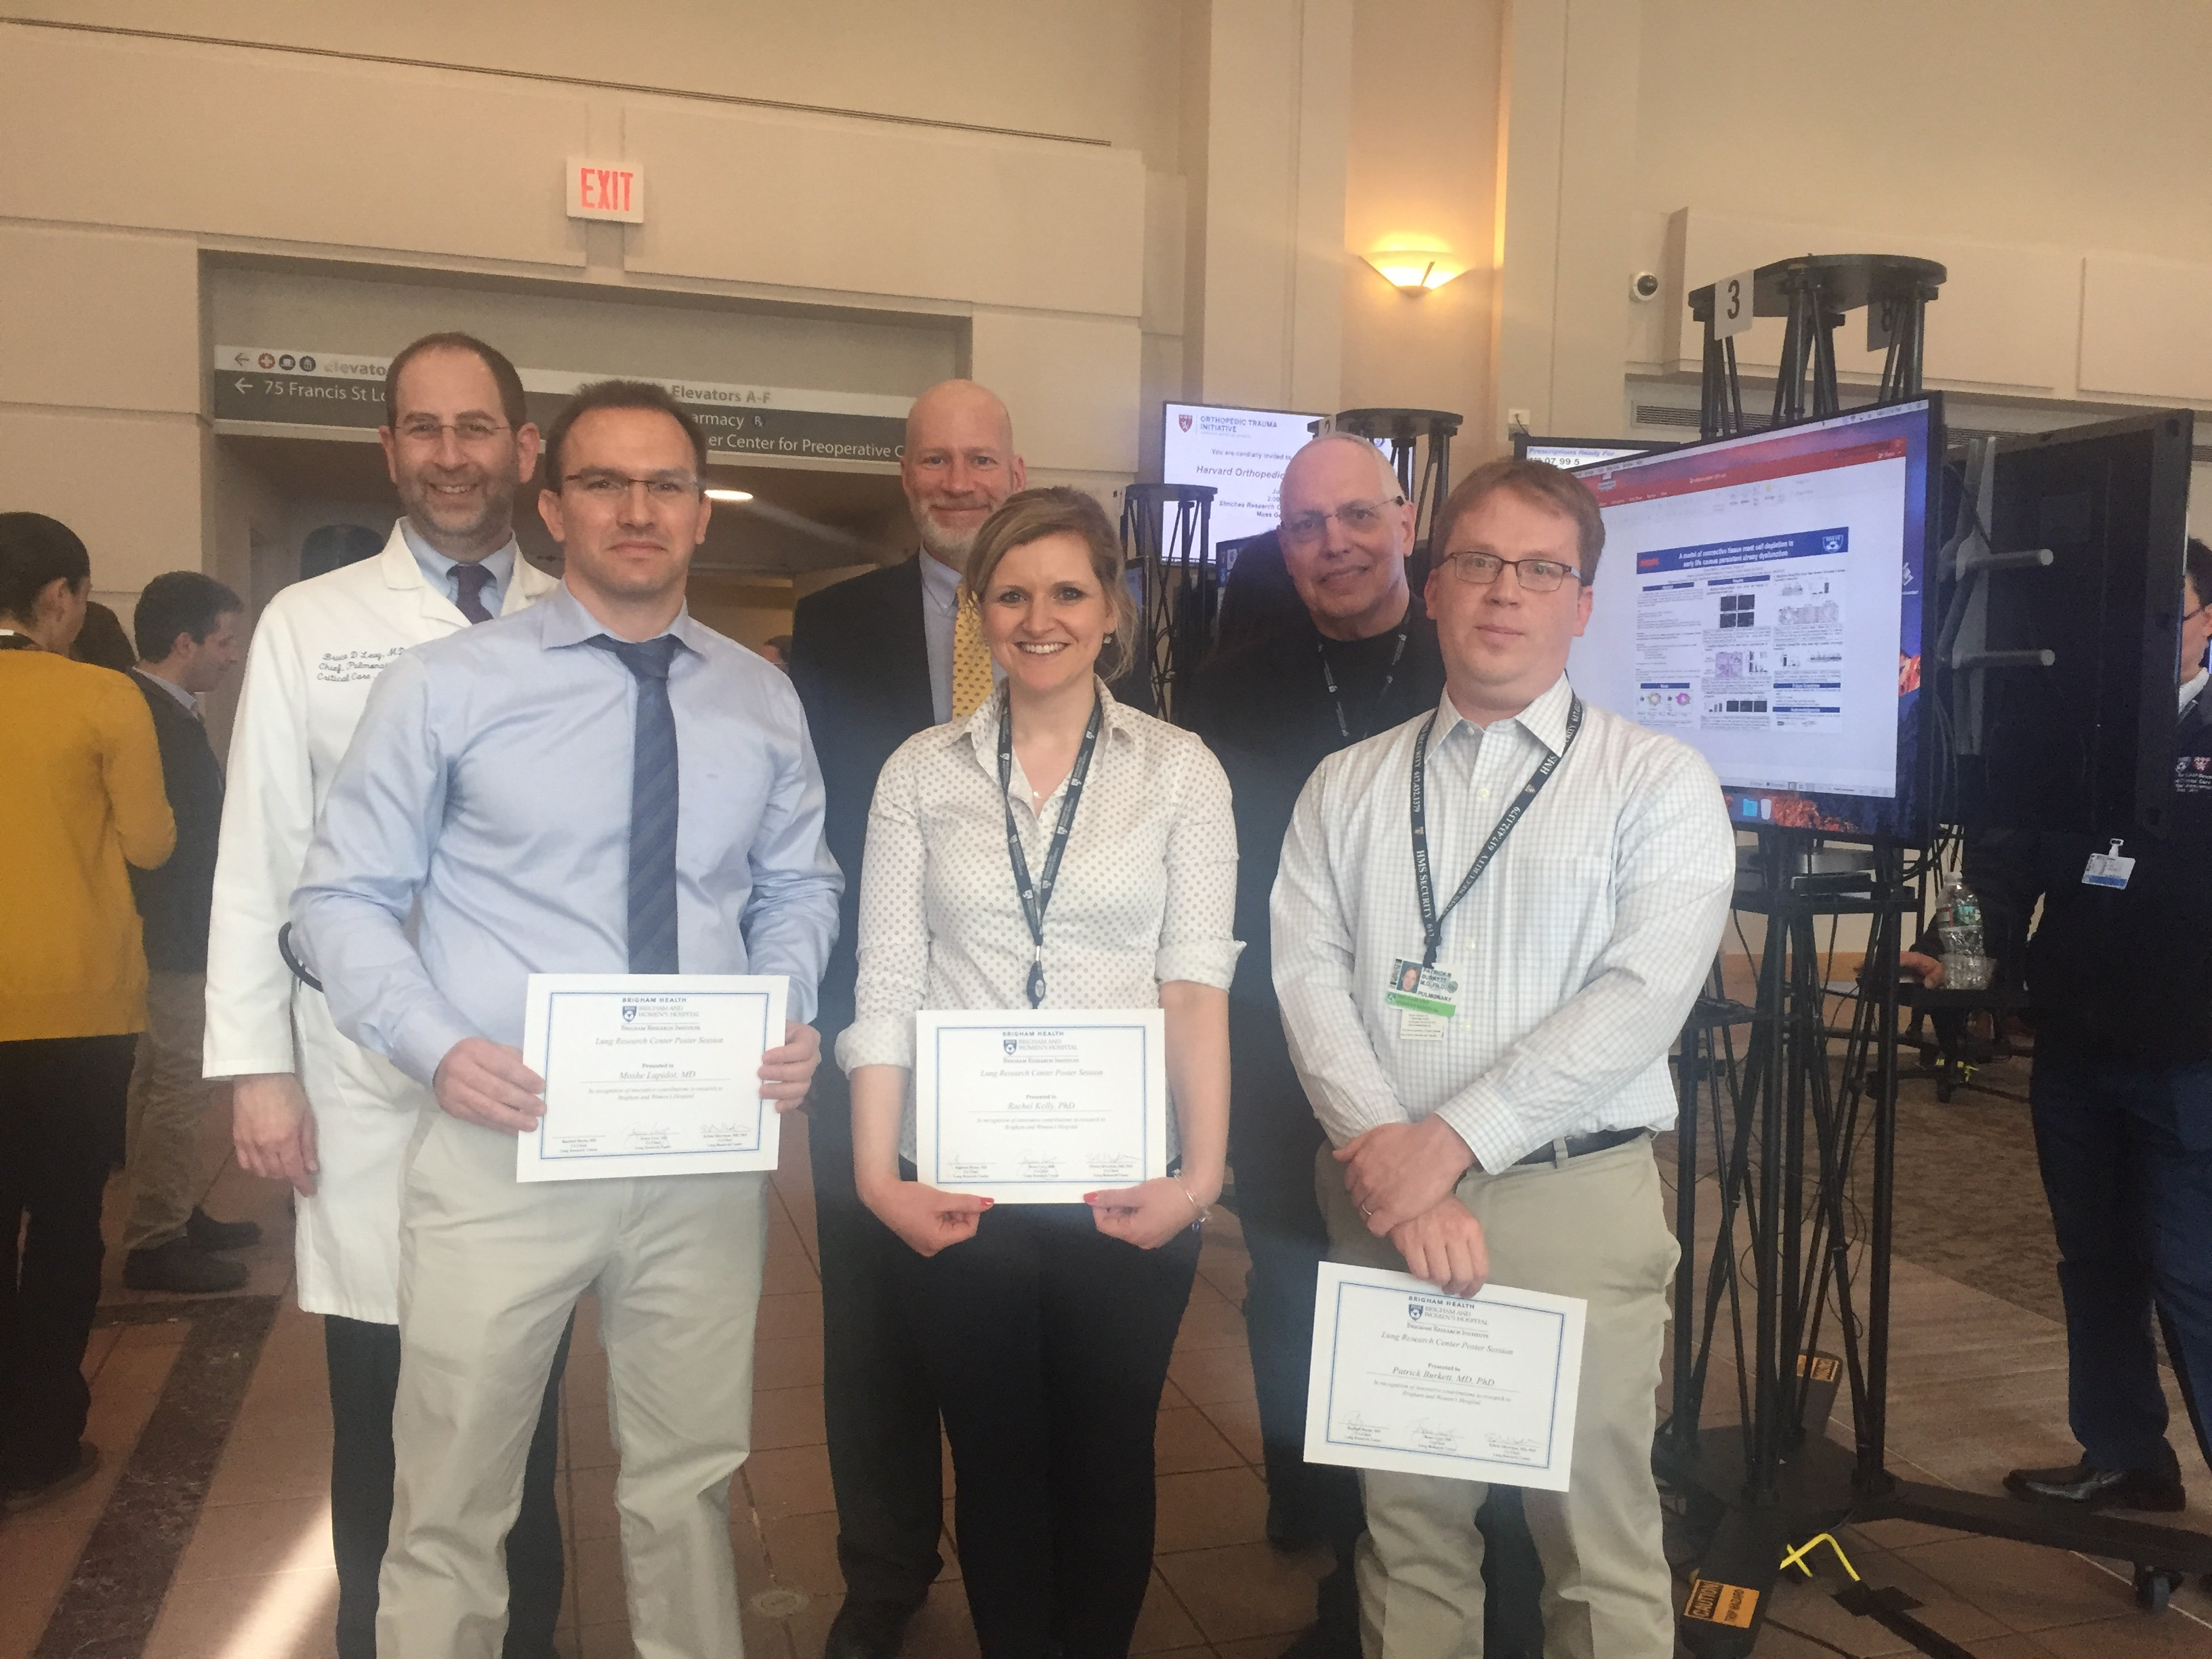 Winners from the Lung Symposium